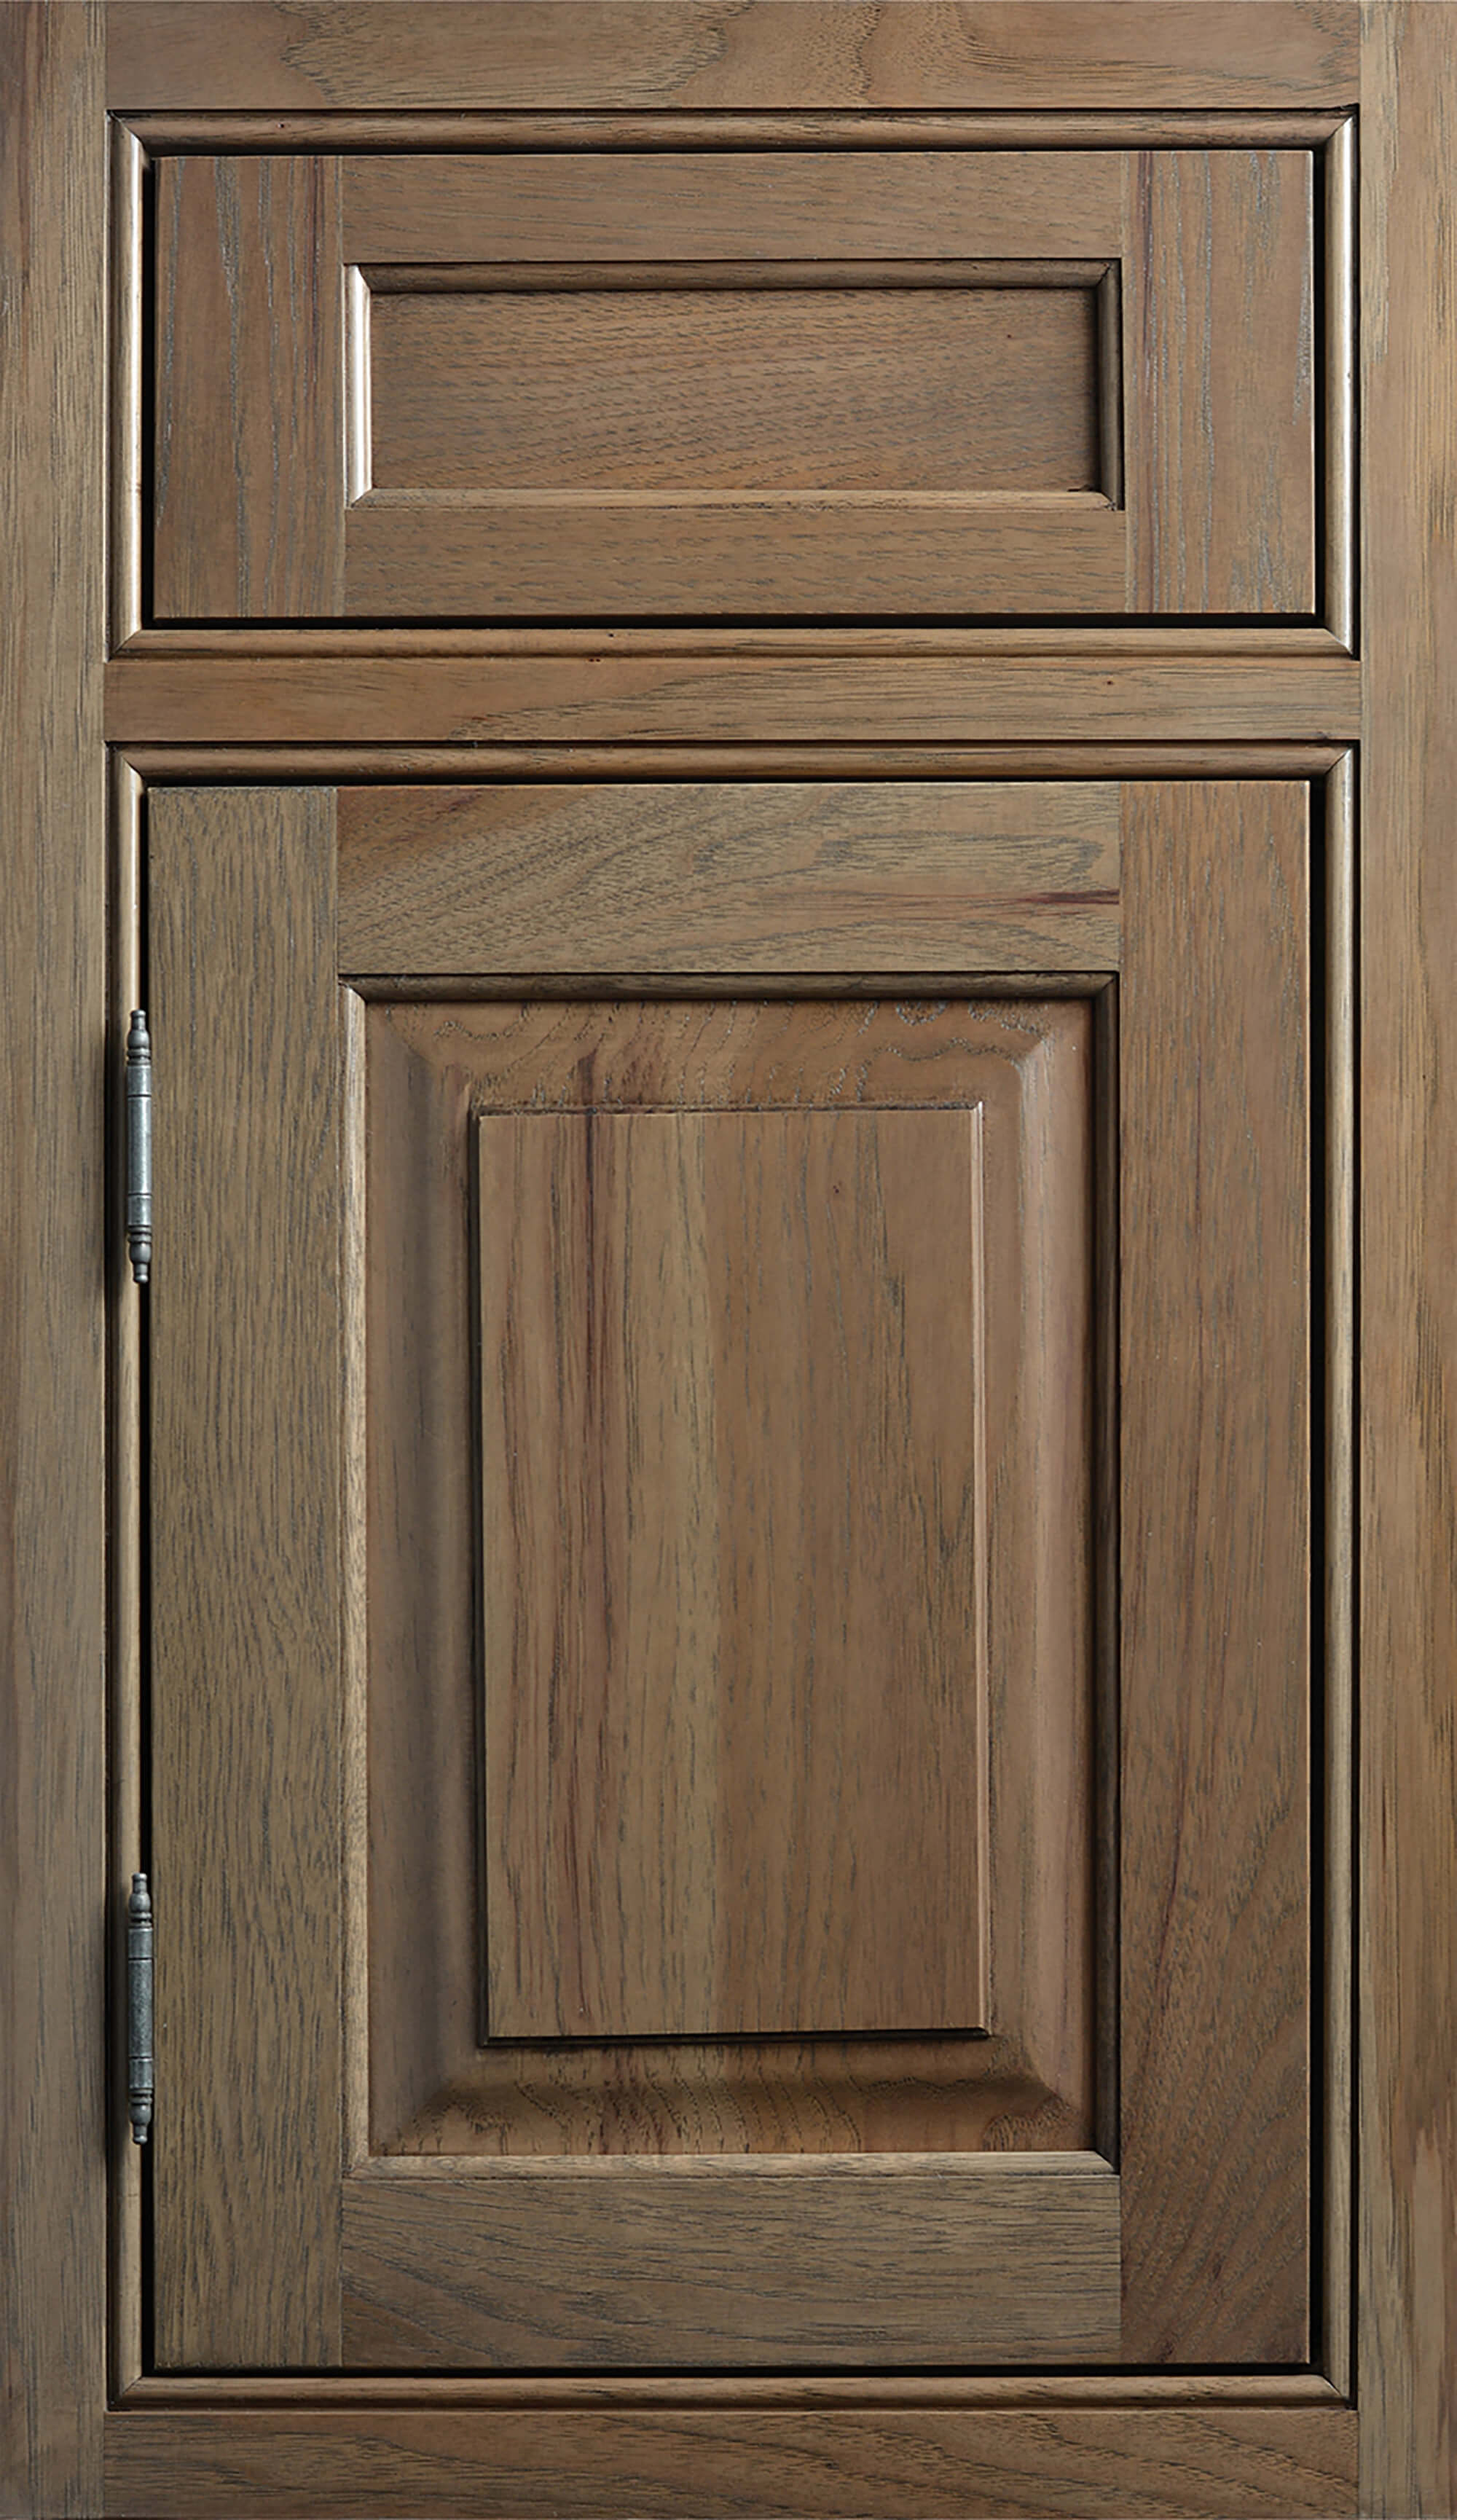 Dura Supreme Cabinetry, Inset Styling on the Kendall-Inset door style with Beaded Face Frame, one Barrel, and one Concealed Hinging